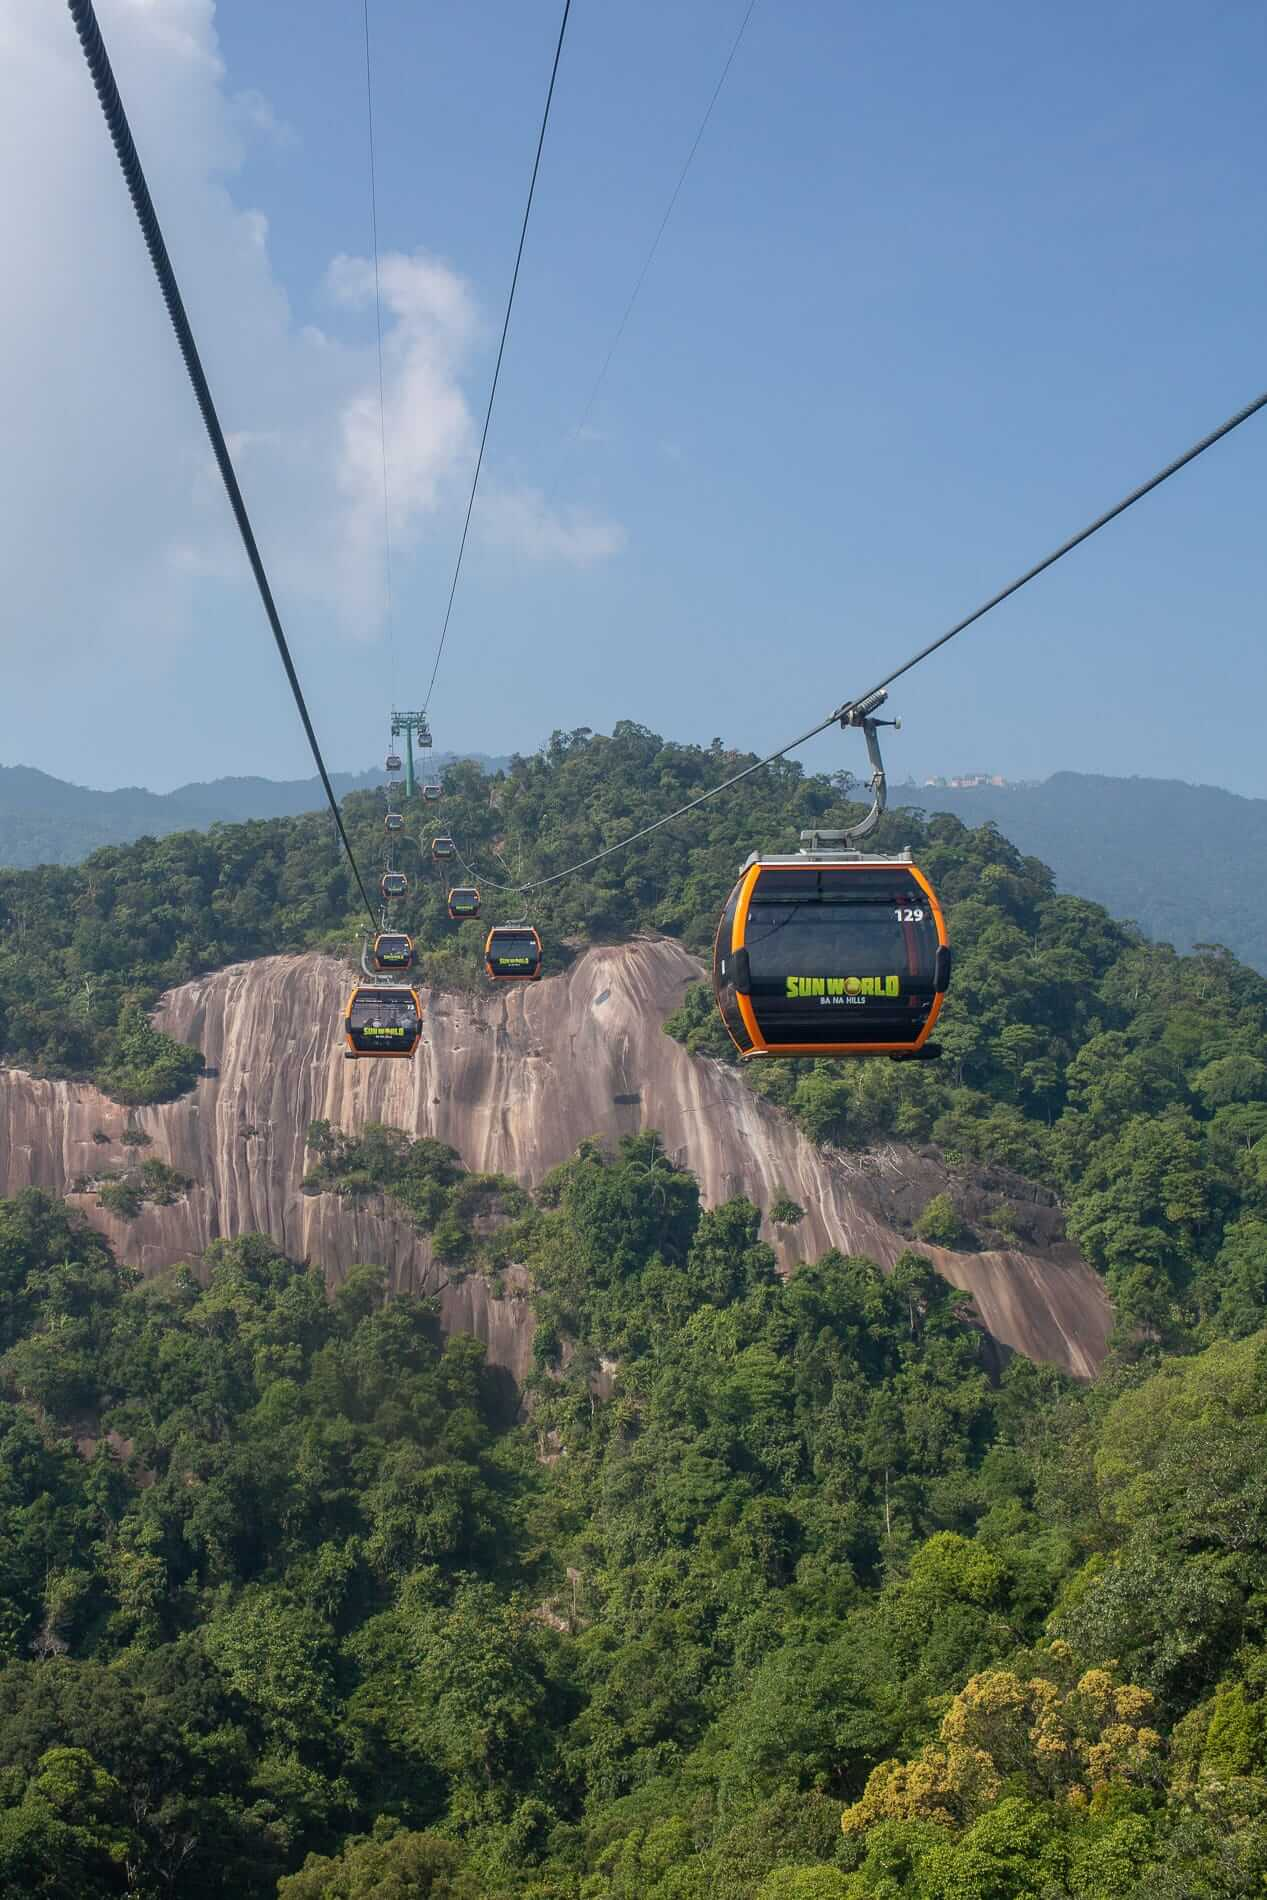 A line of cable cars